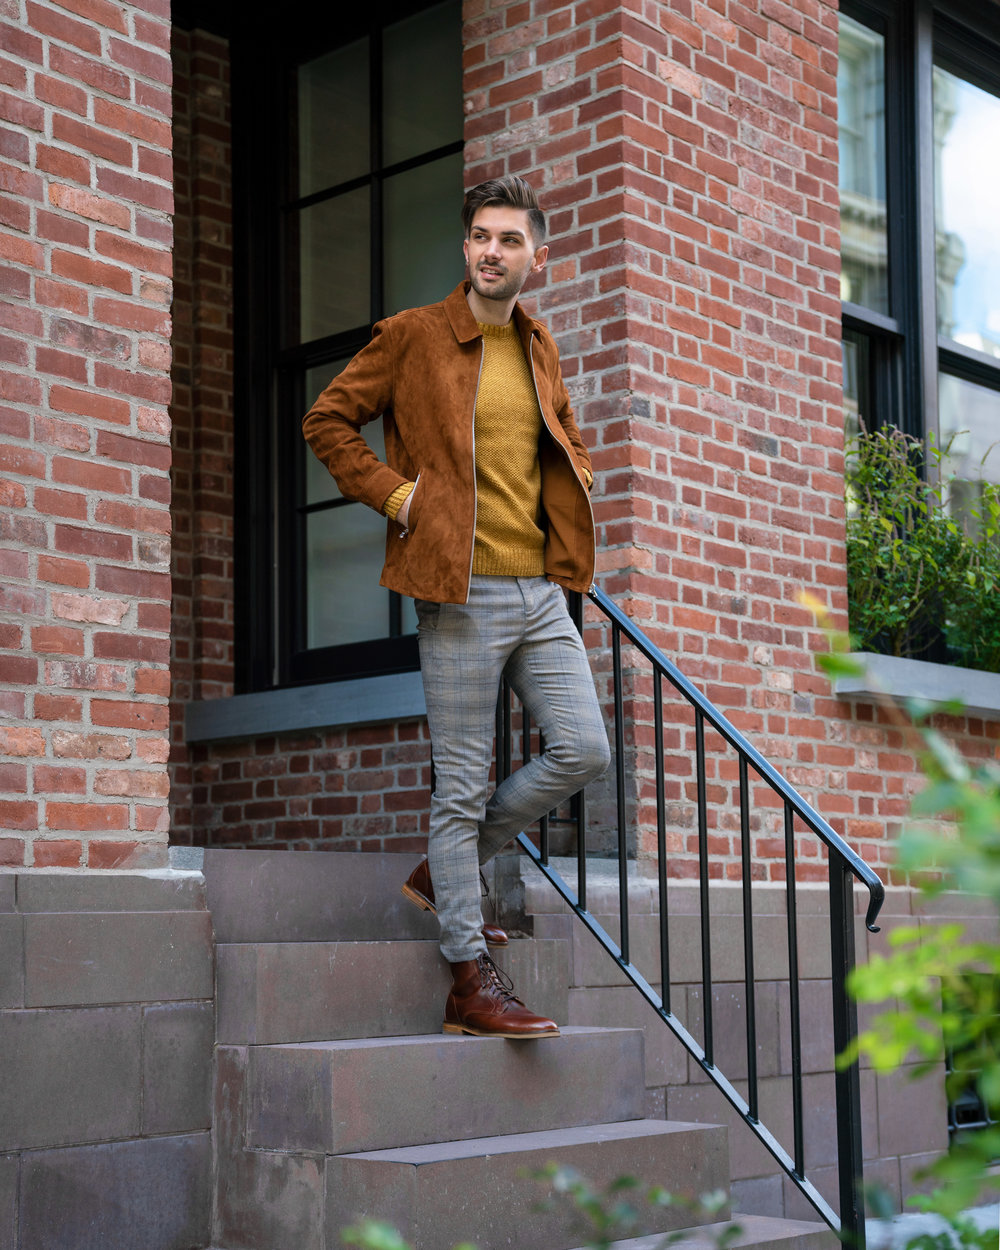 Clarks #ZapposStyle | The Modern Otter